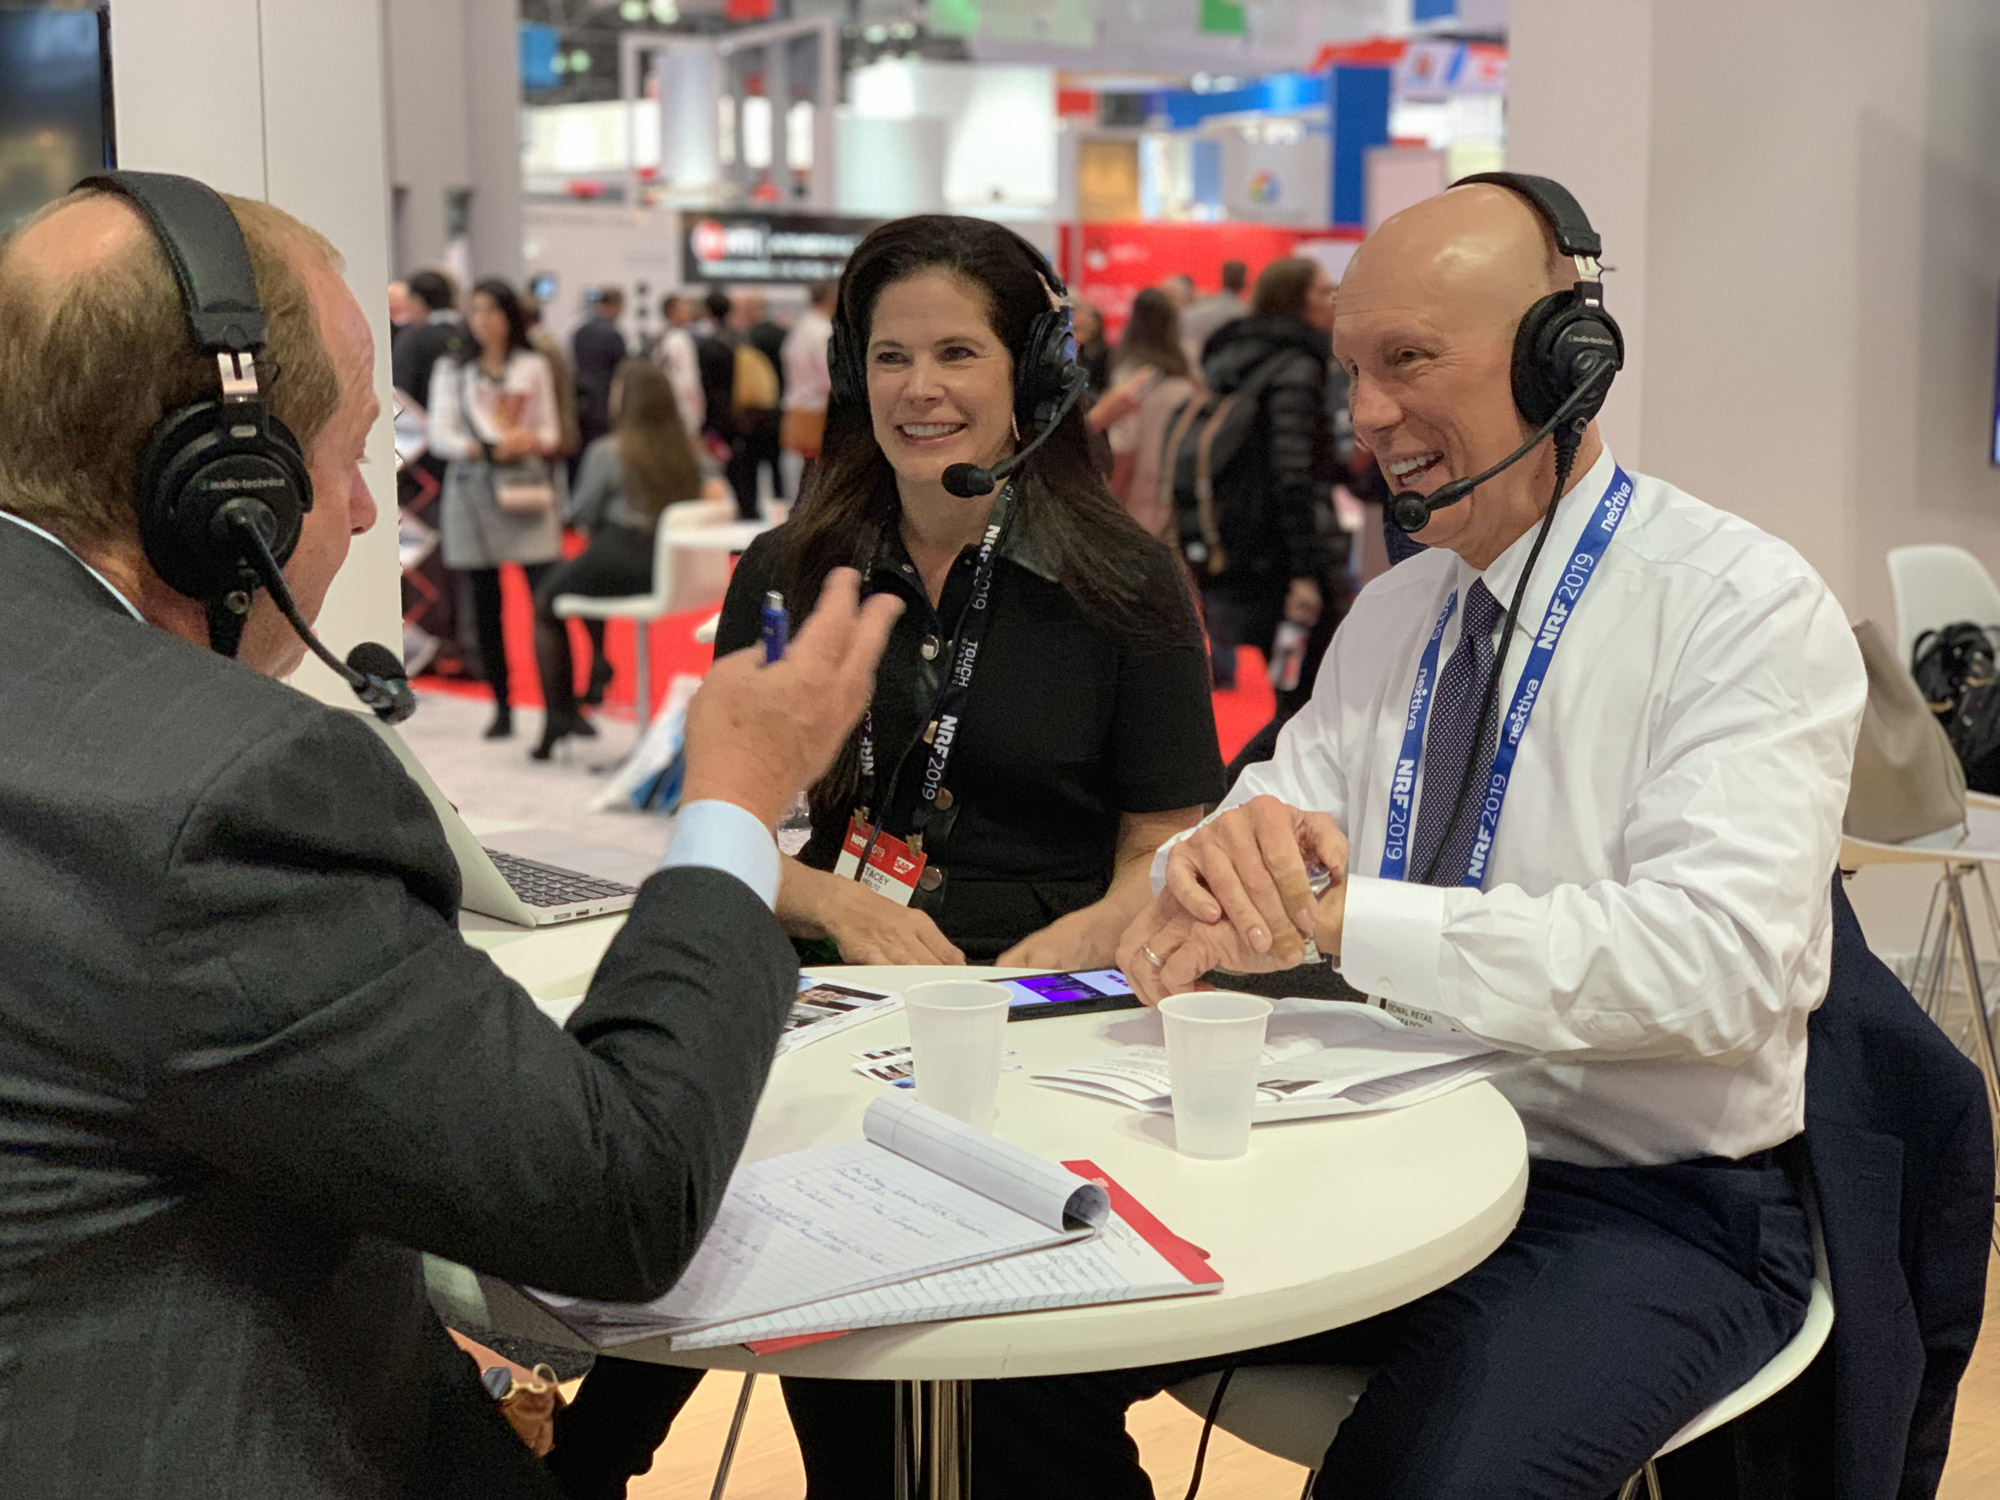 NRF President and CEO Matthew Shay and SW Retail Advisors Founder Stacey Widlitz